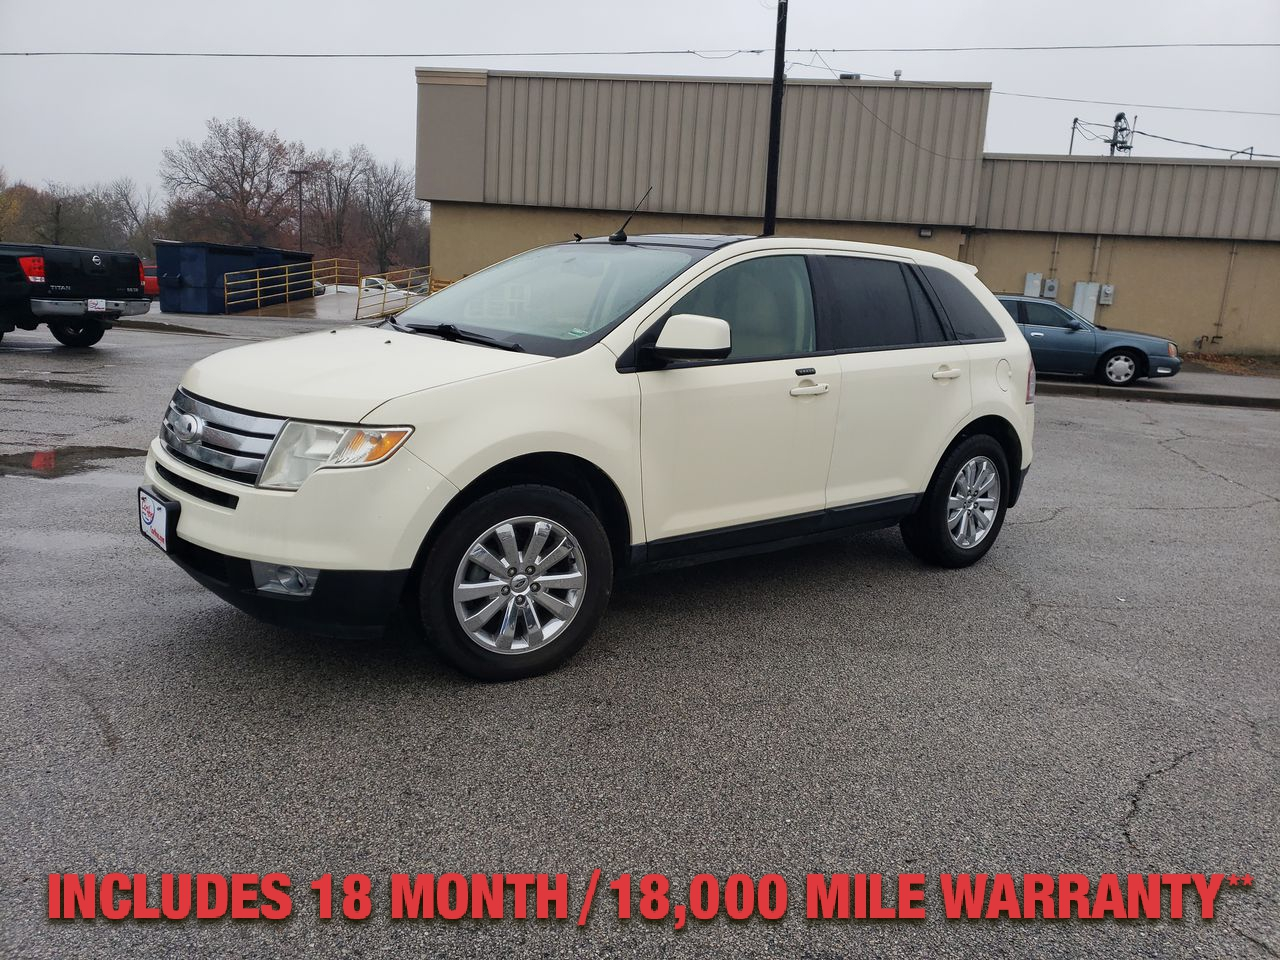 Pre-Owned 2007 FORD EDGE SEL Plus S